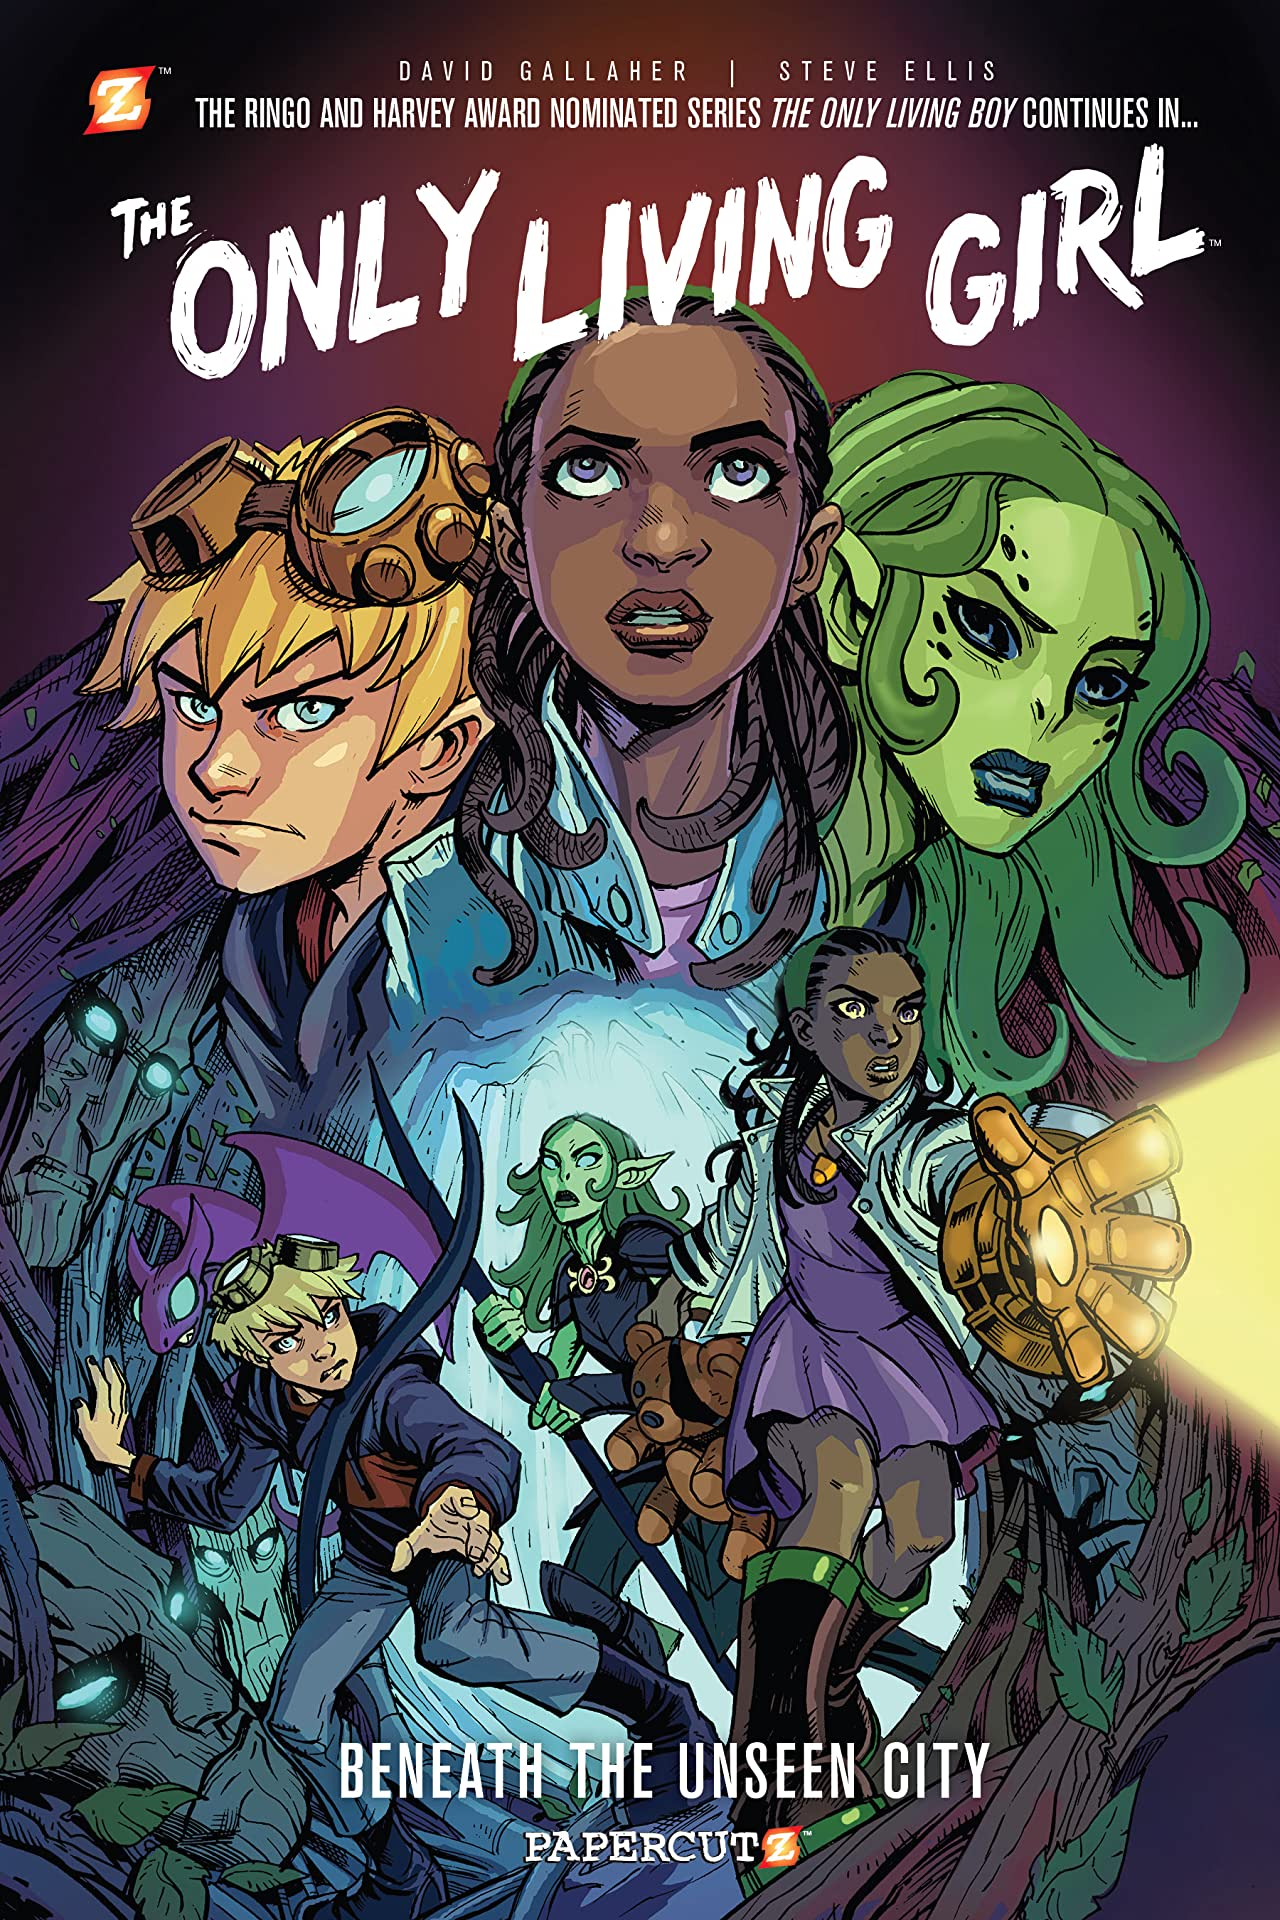 The Only Living Girl Vol. 2: Beneath the Unseen City